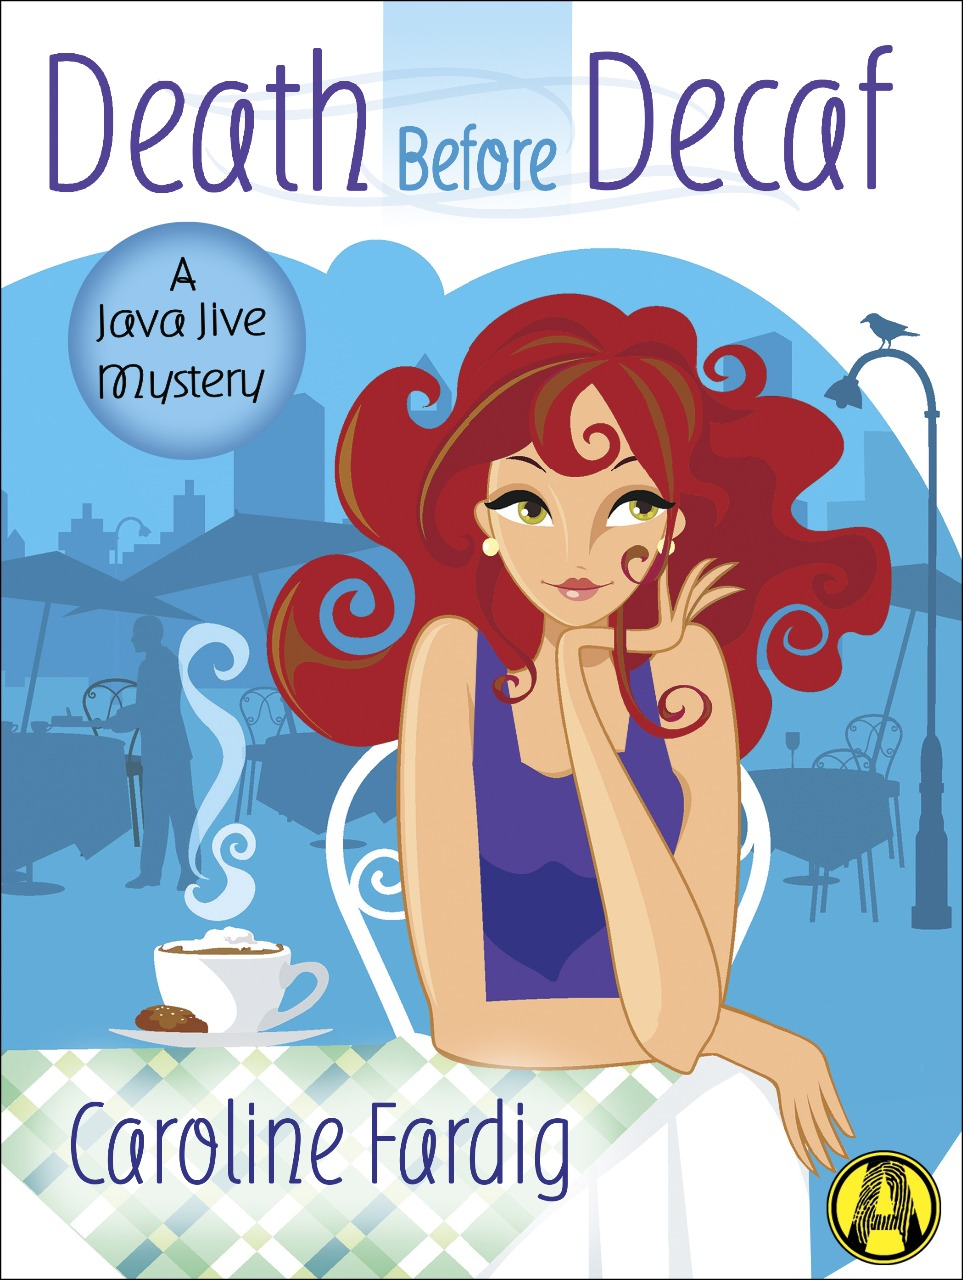 Death Before Decaf cover 2.6M